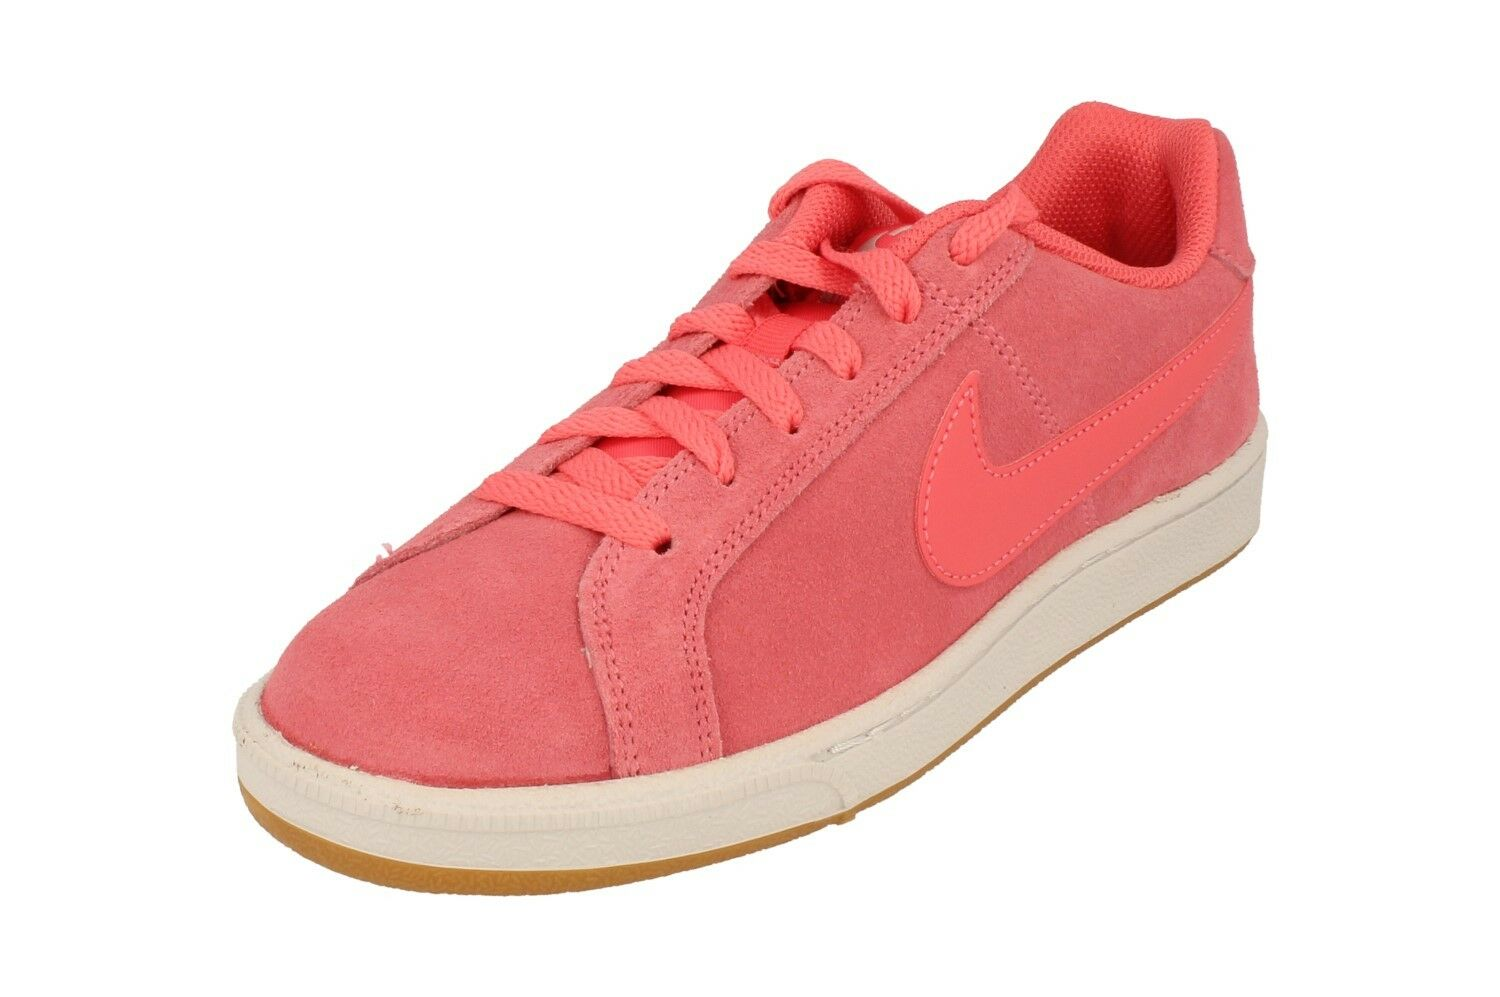 Nike Womens Court Royale Suede Trainers 916795 Sneakers shoes 800